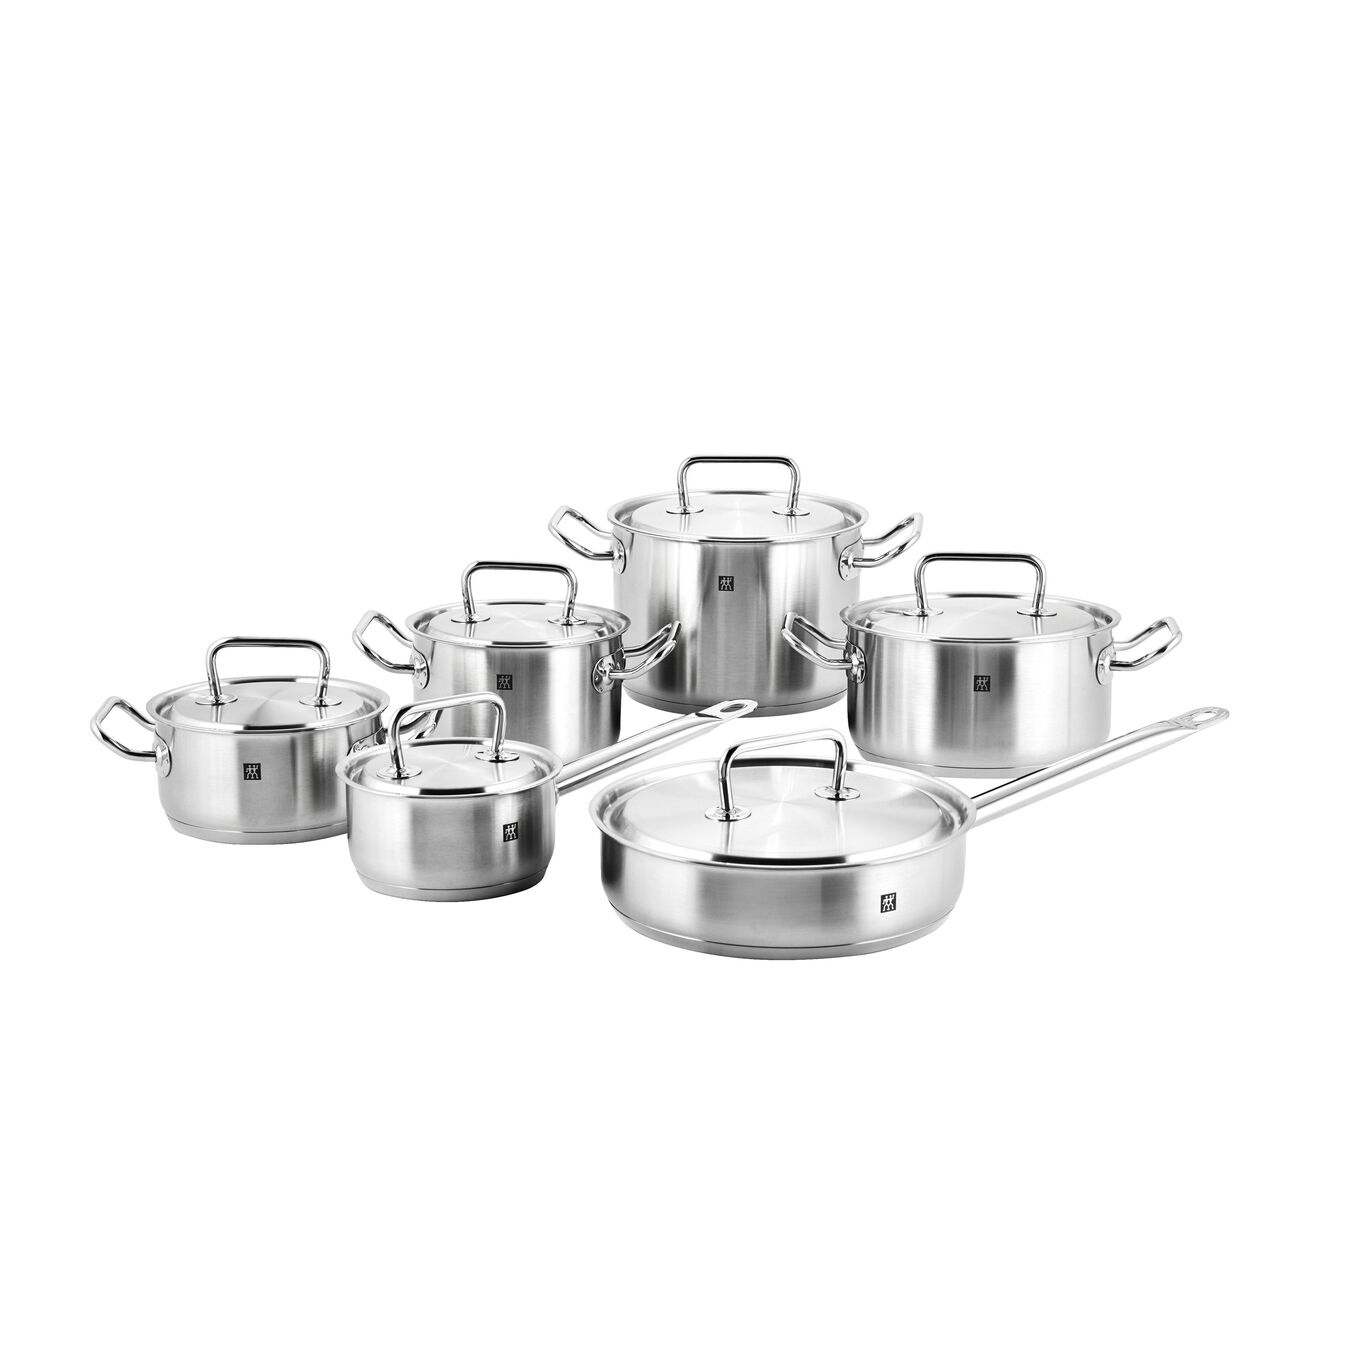 12 Piece 18/10 Stainless Steel Cookware set,,large 1